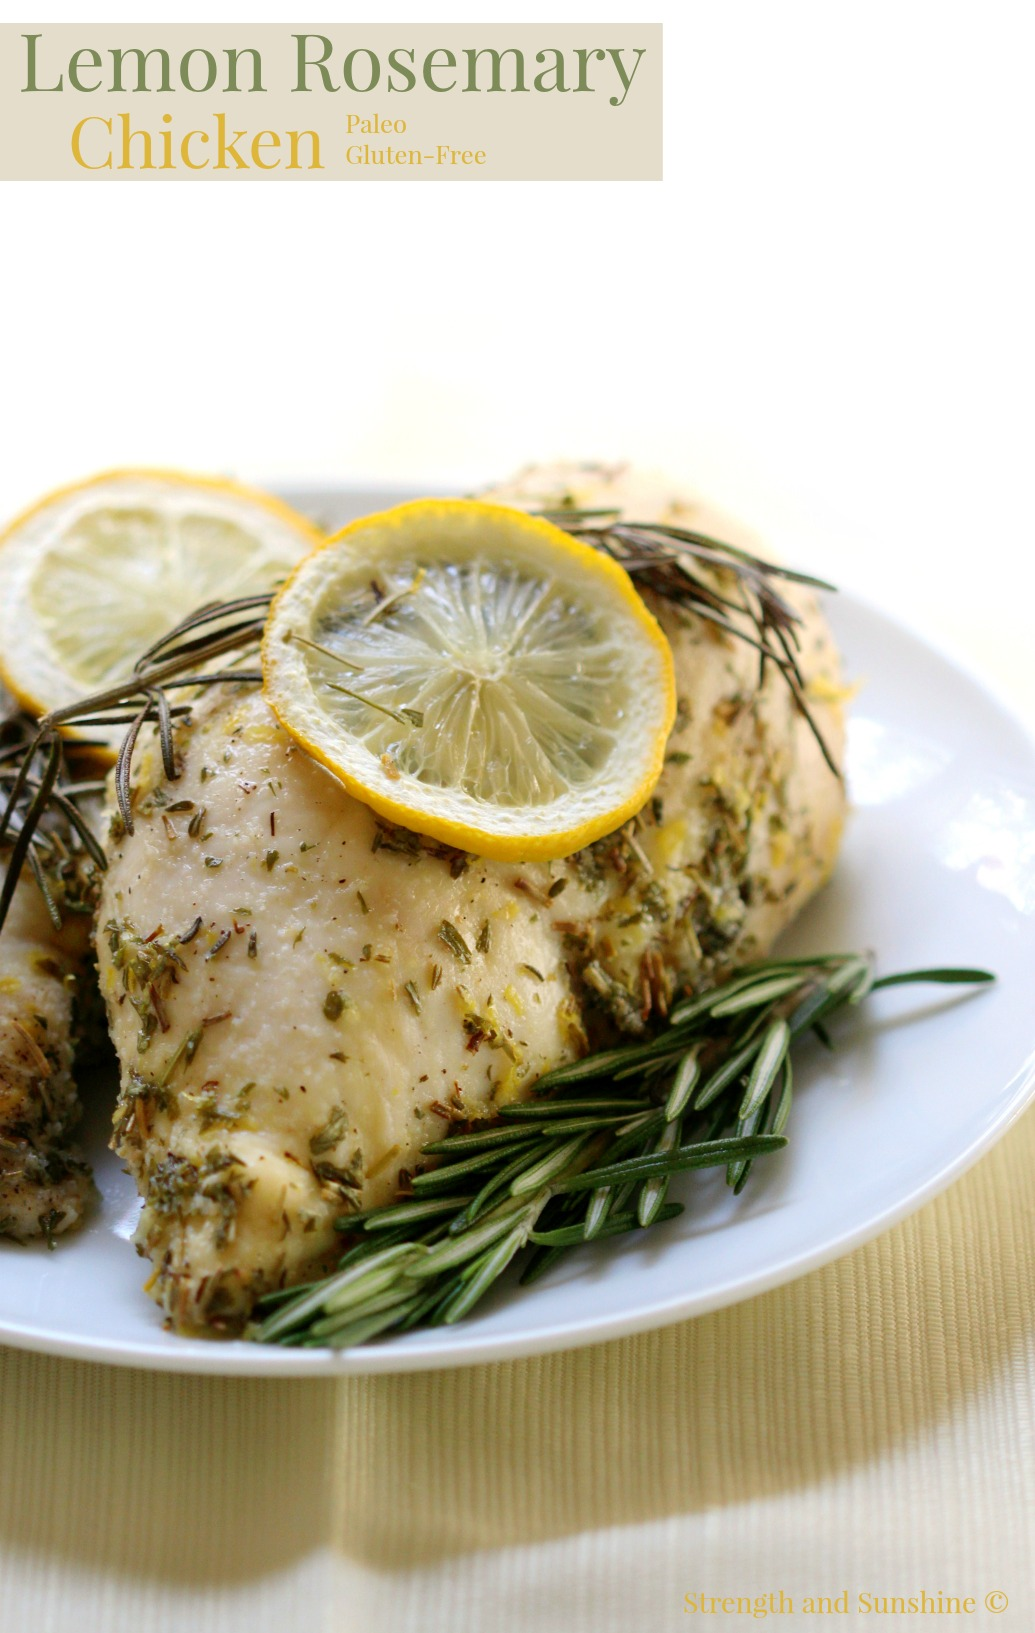 RebeccaGF666 Perfectly baked and zesty lemon rosemary chicken breasts ...